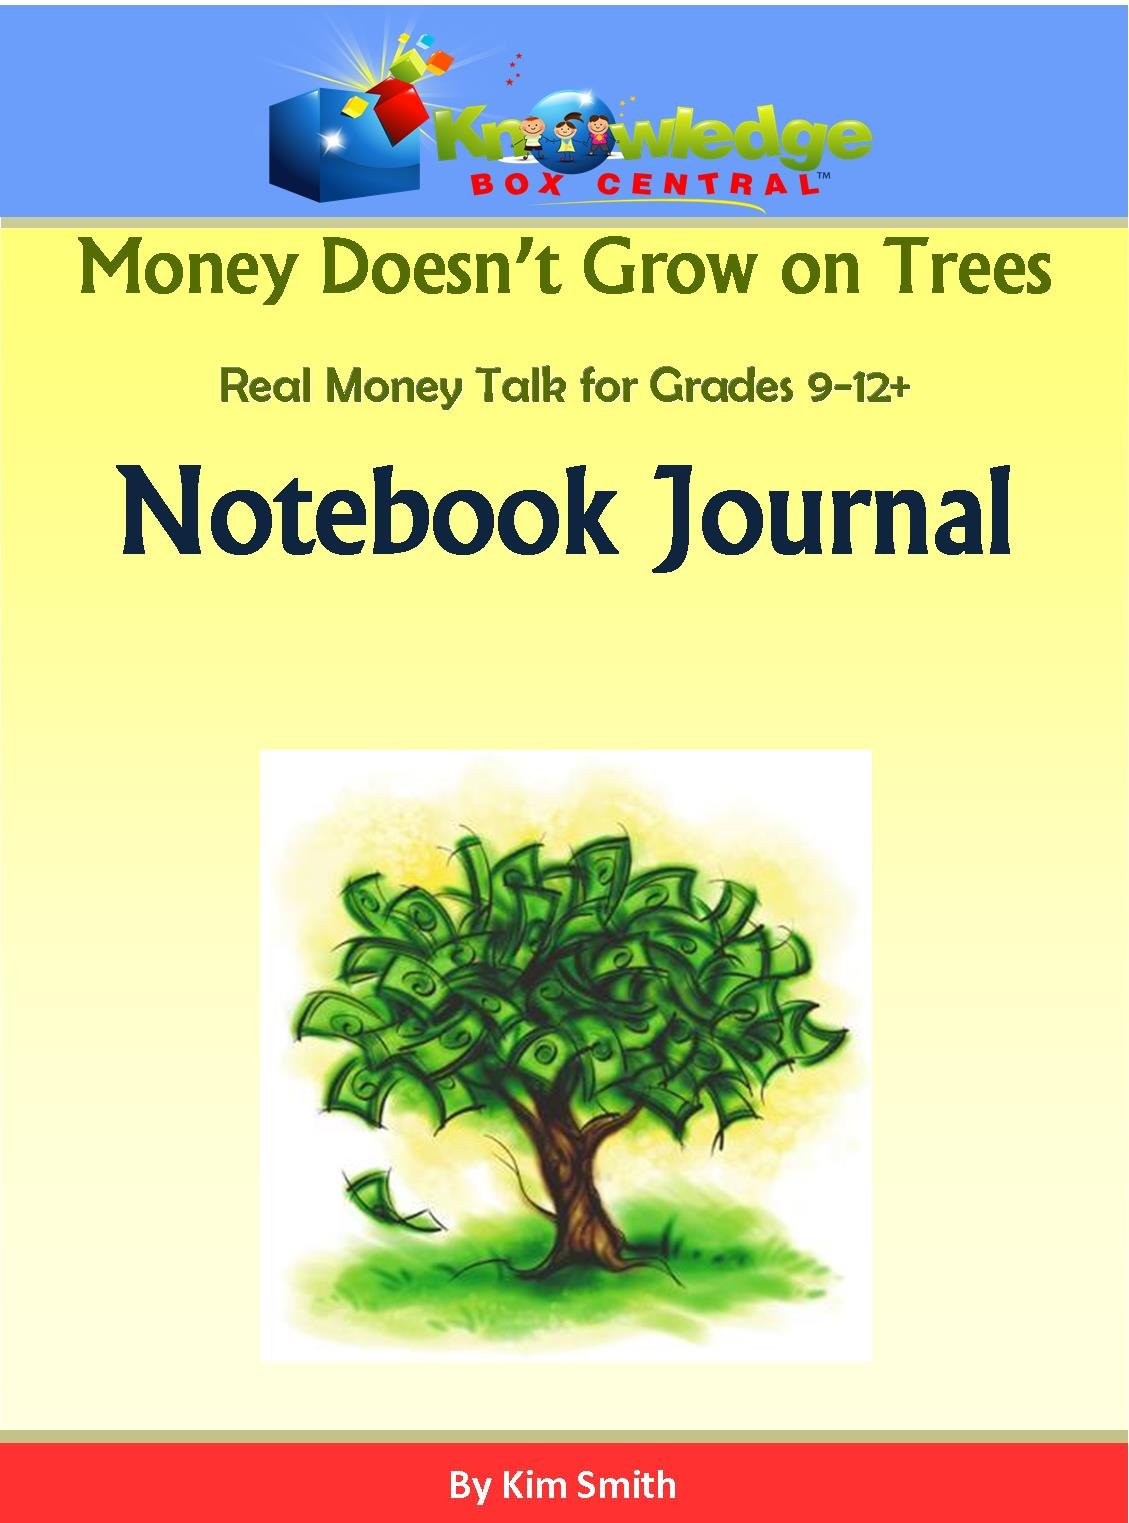 Money Doesn't Grow On Trees: Real Money Talk For Grades 9-12+ Notebook Journal - CD pdf